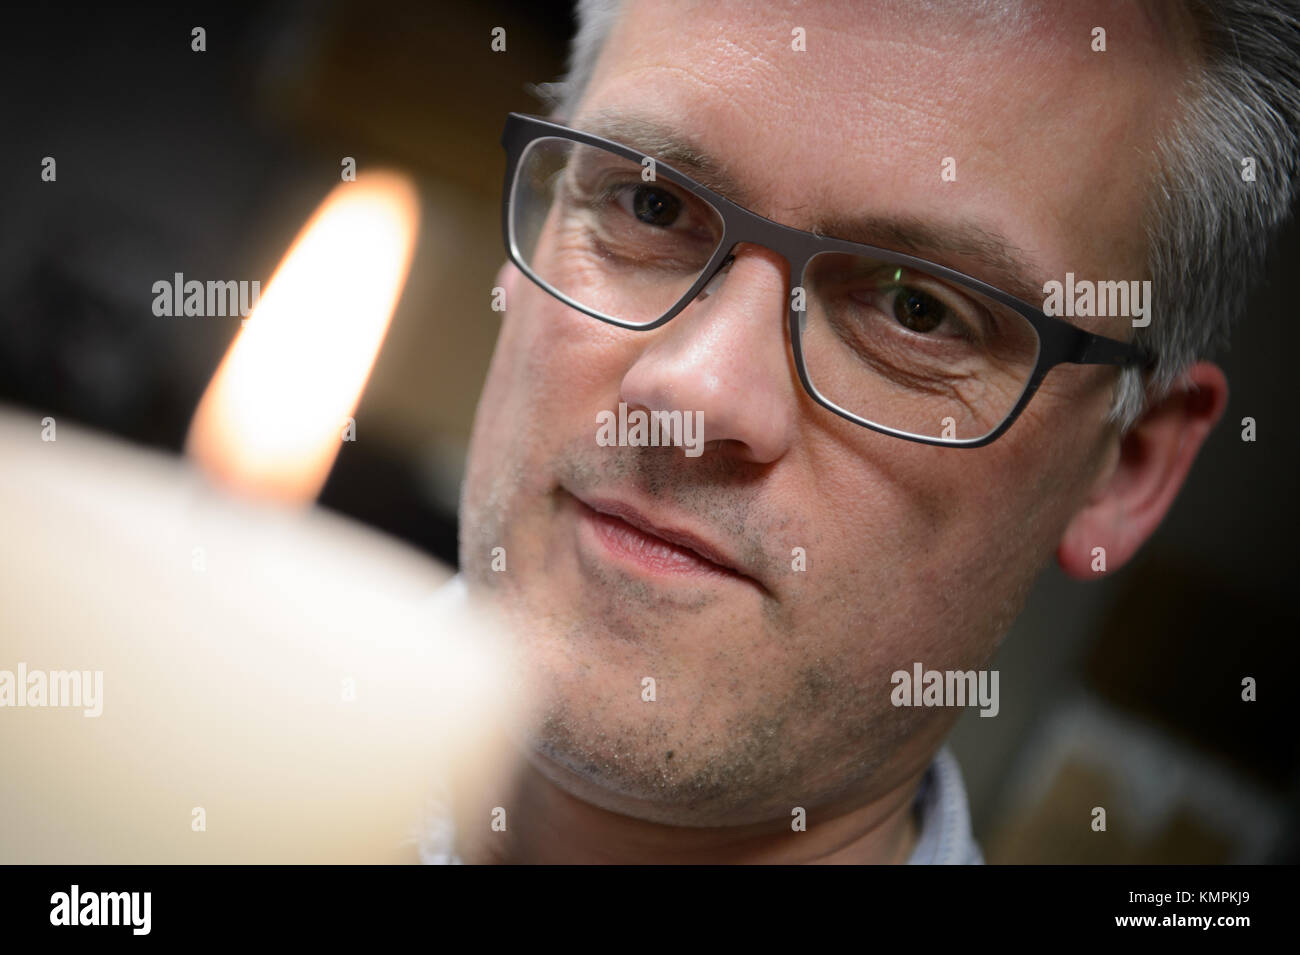 Stuttgart, Germany. 5th Dec, 2017. Candle tester Volker Albrecht looking at a candle's flame, in Stuttgart, Germany, Stock Photo